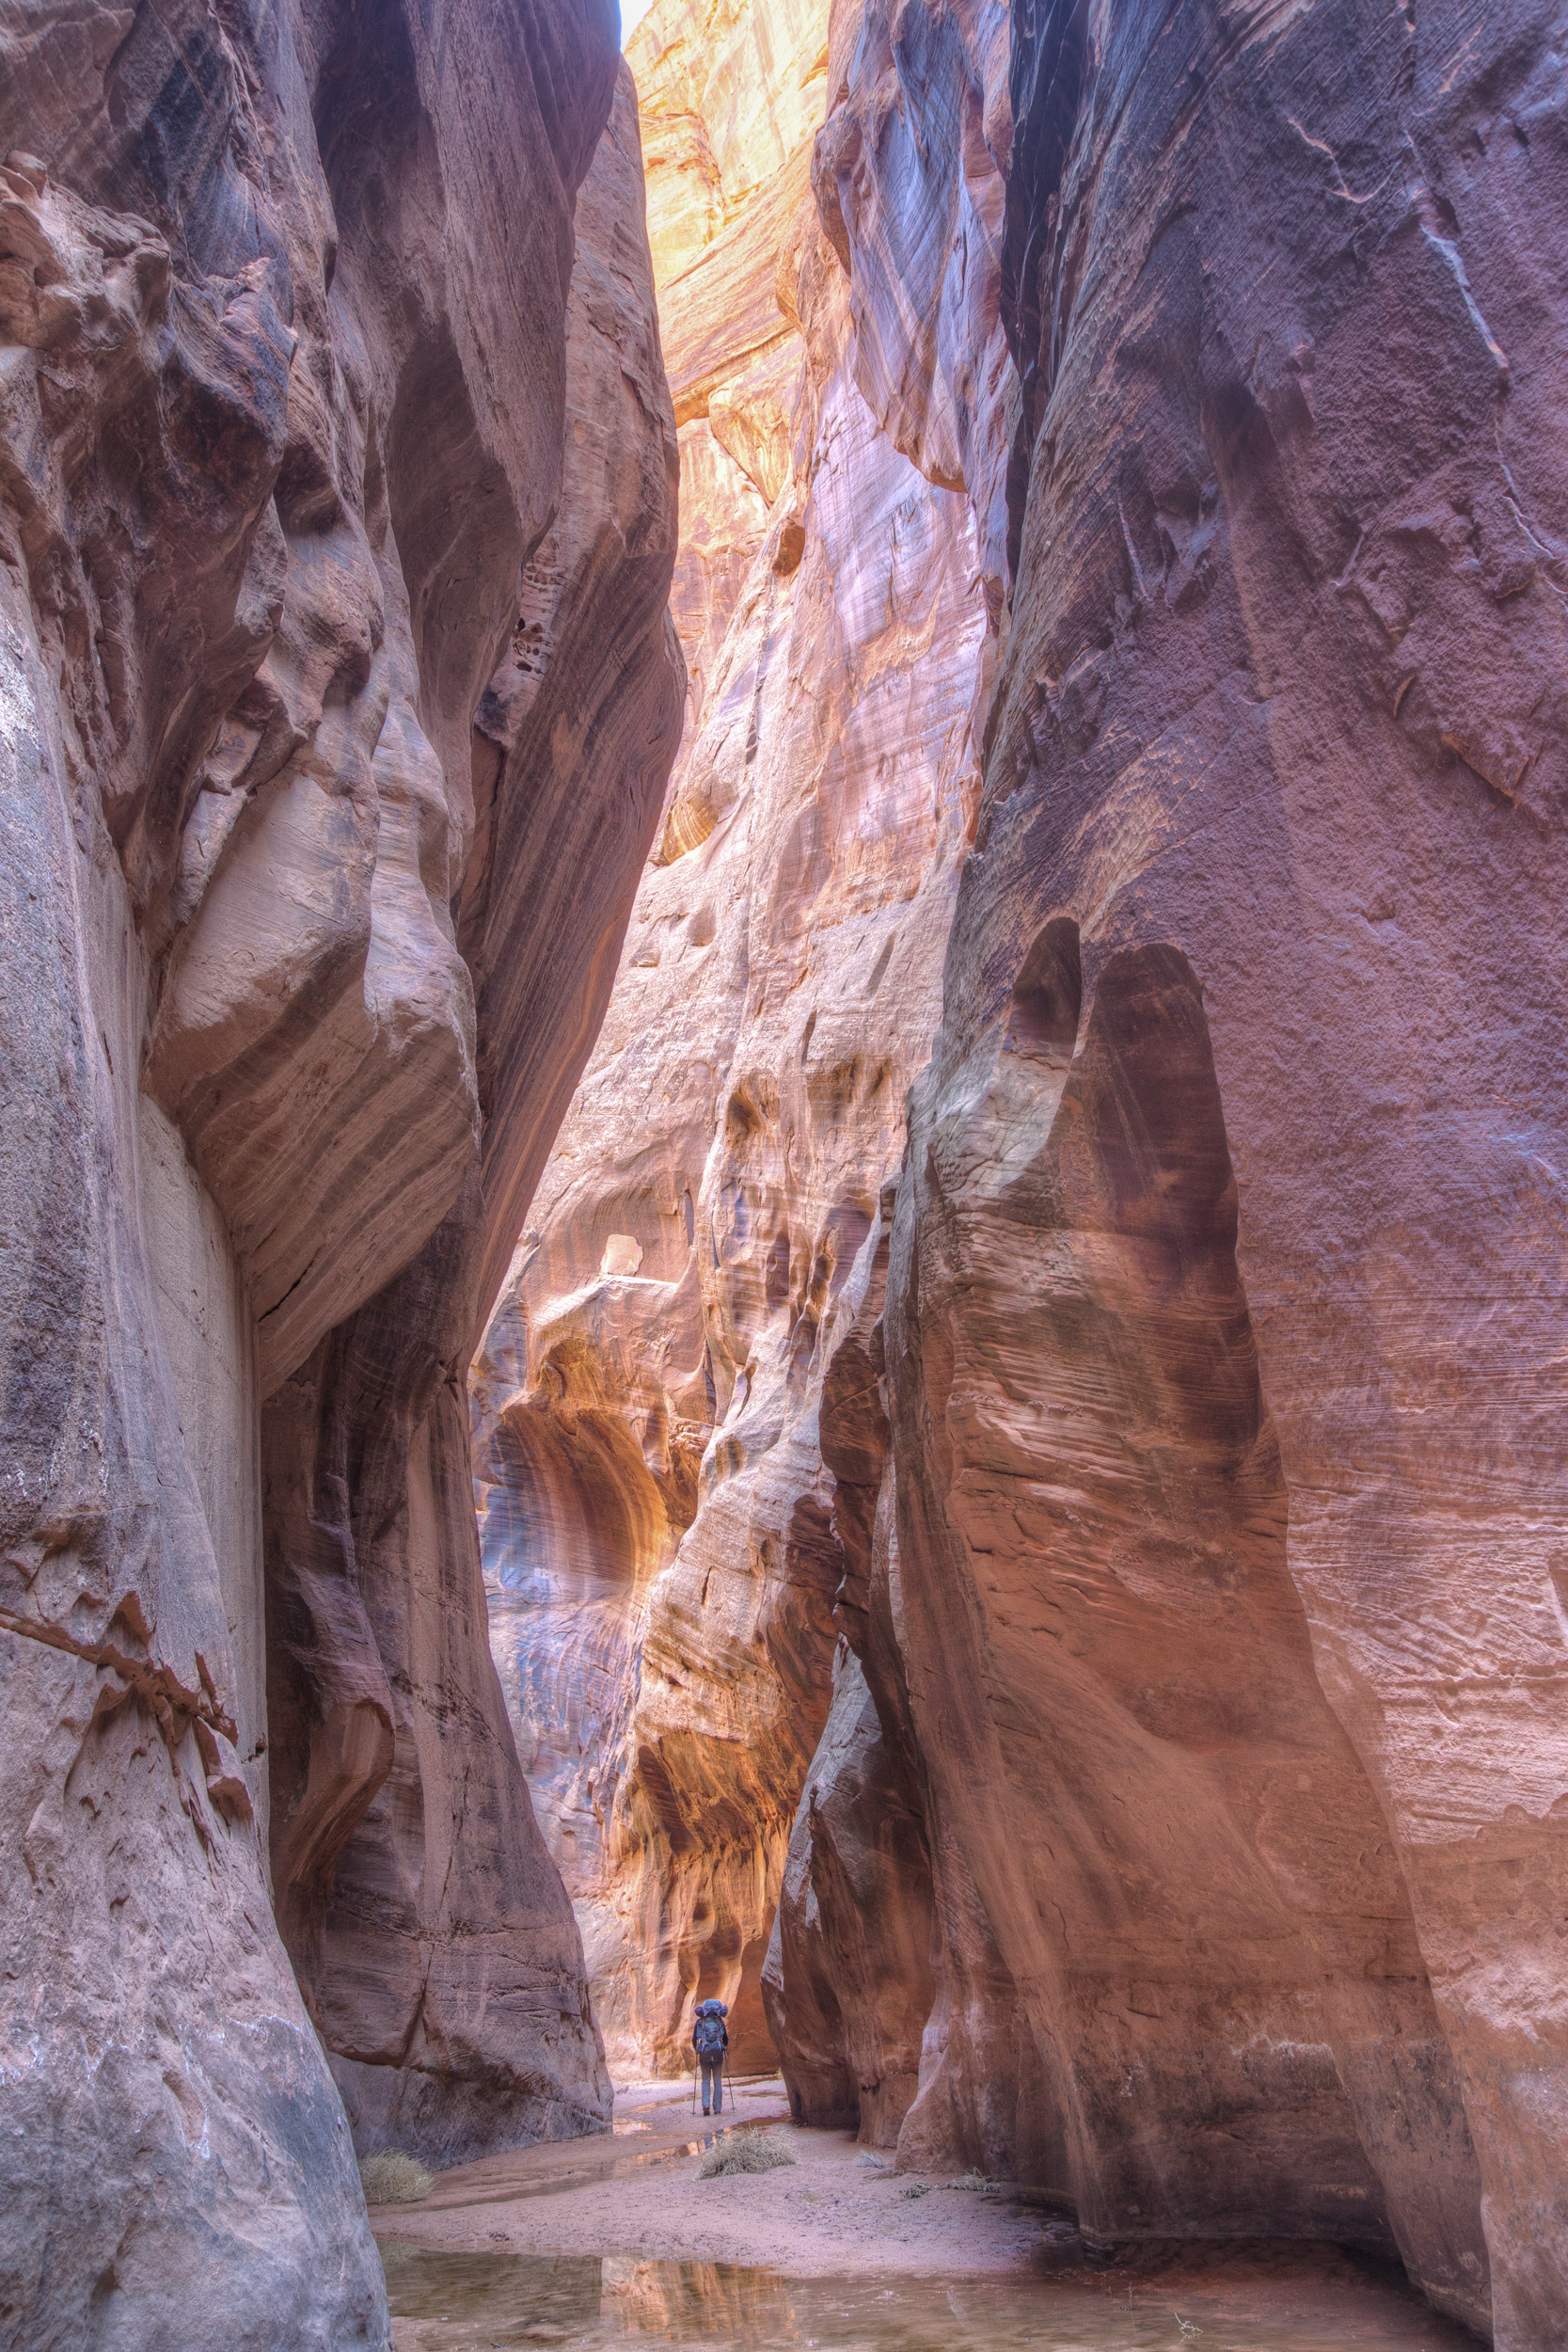 #conservationlands15 Social Media Takeover, June 15th, Bucket List Location Buckskin Gulch